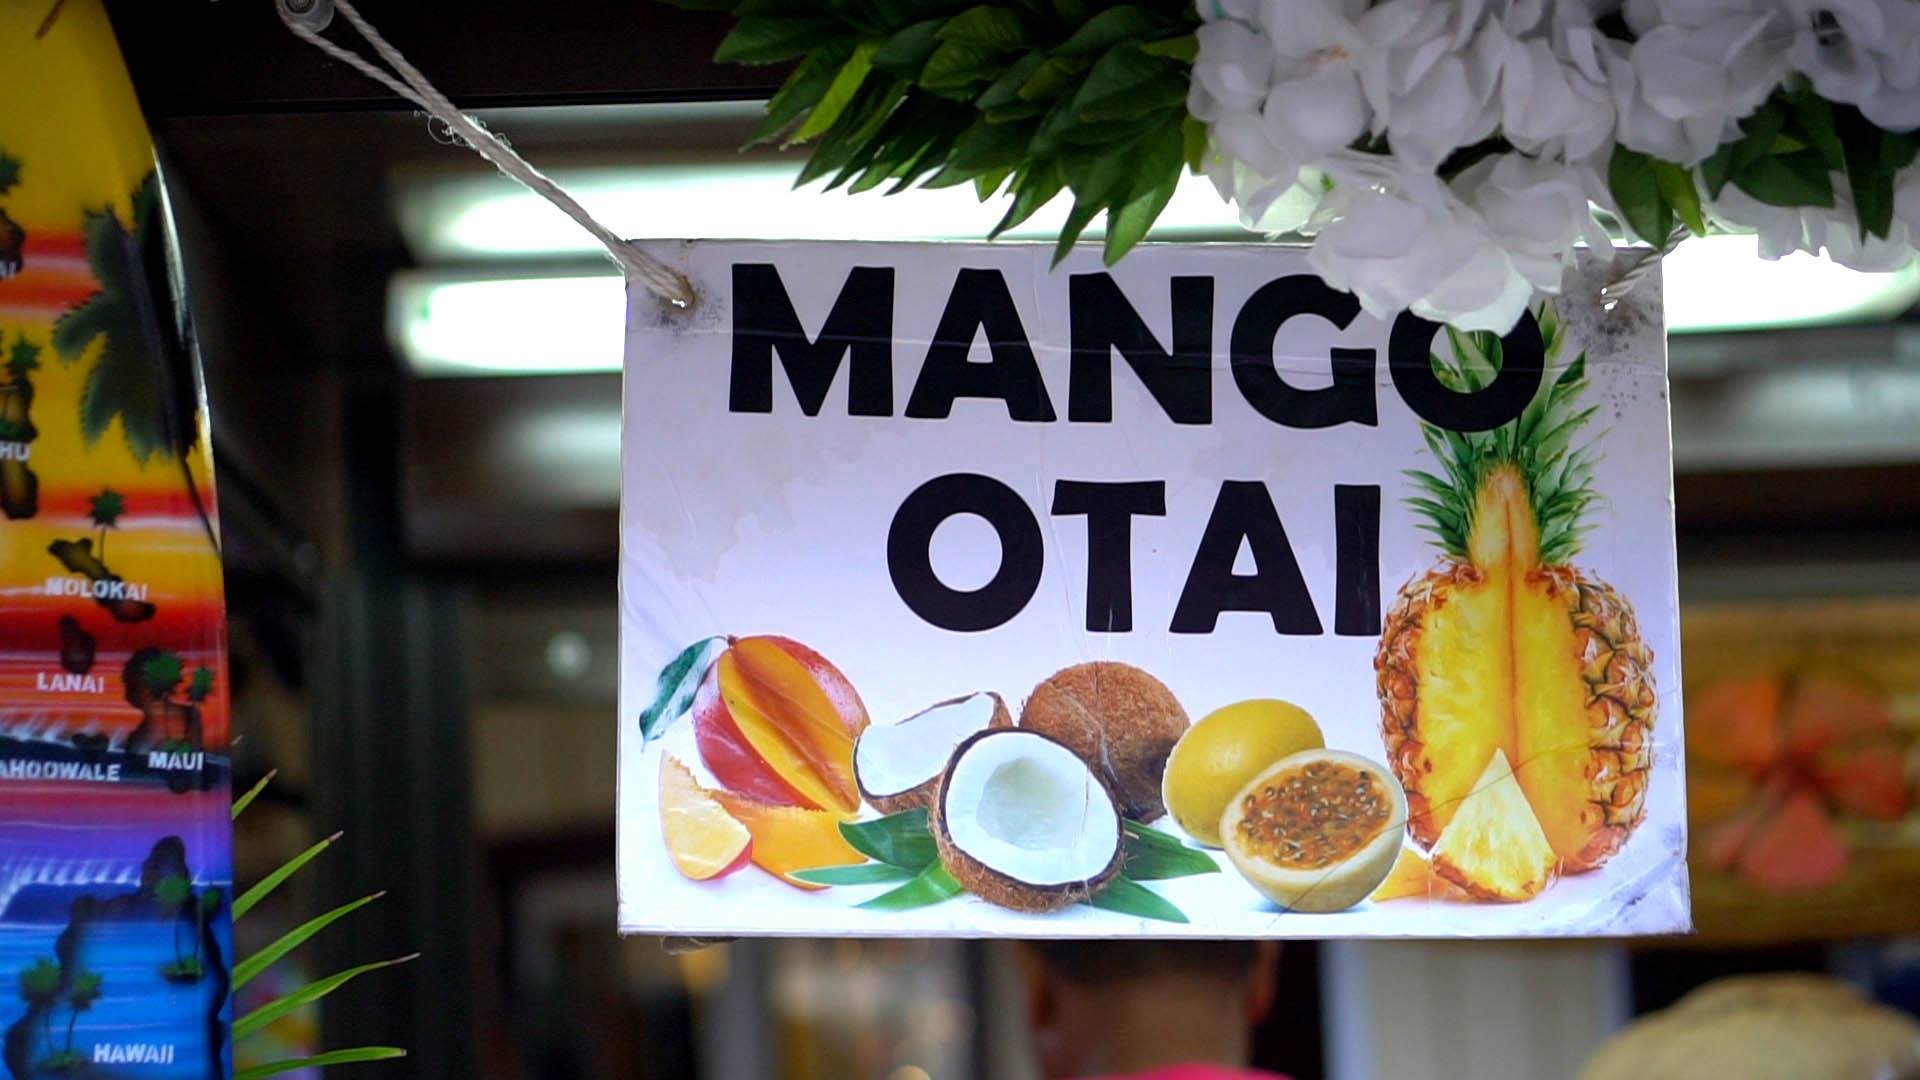 Picture of the sign for Mango Otais at Fia Fia Farms in the Hukilau Marketplace